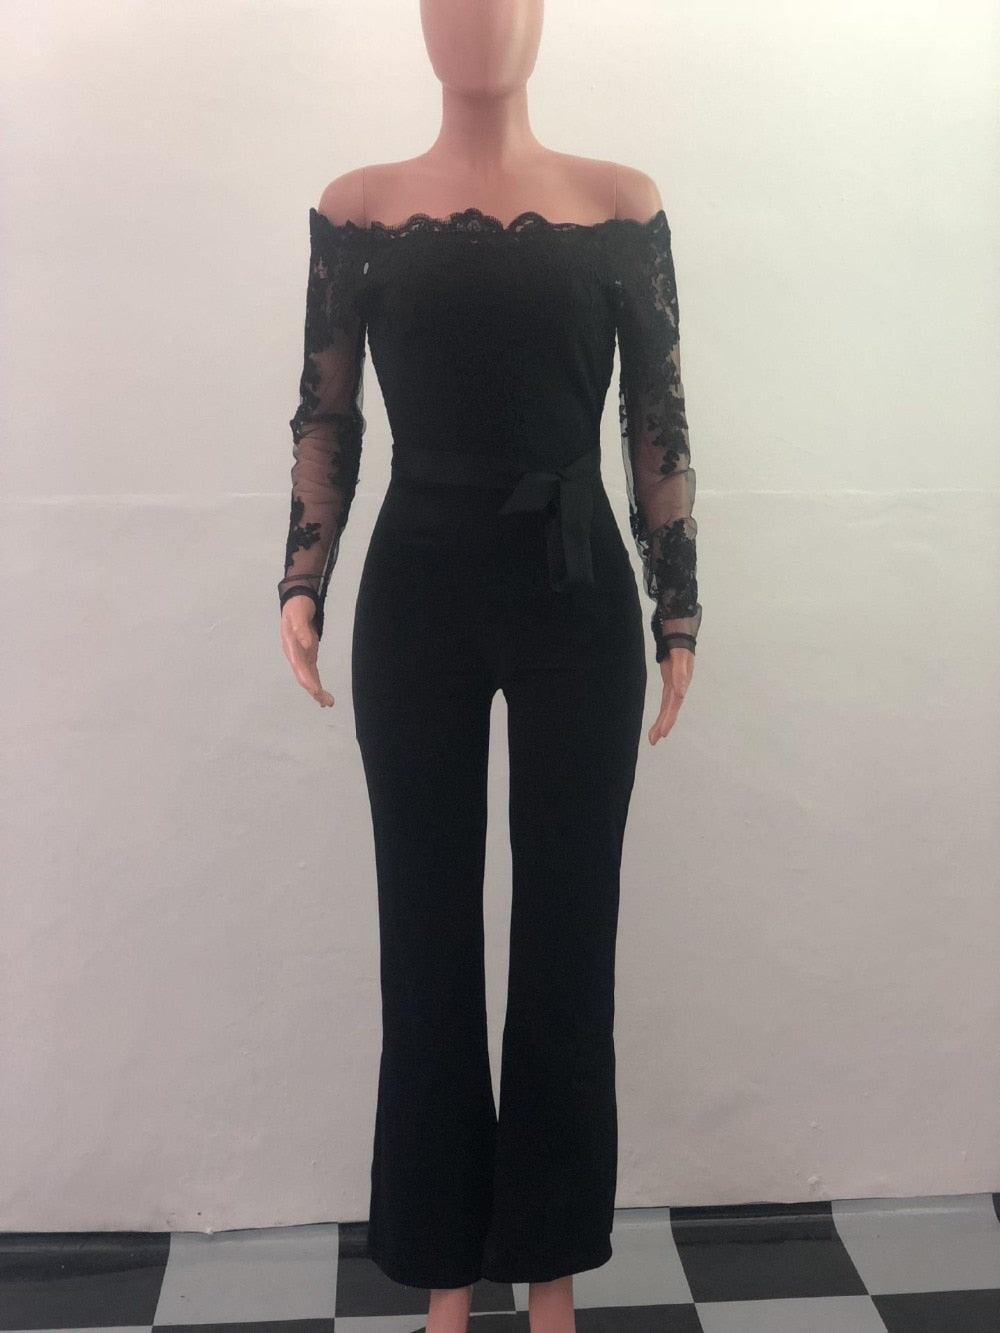 New! Vintage Elegant Lace Jumpsuit Women Wide Leg Jumpsuit